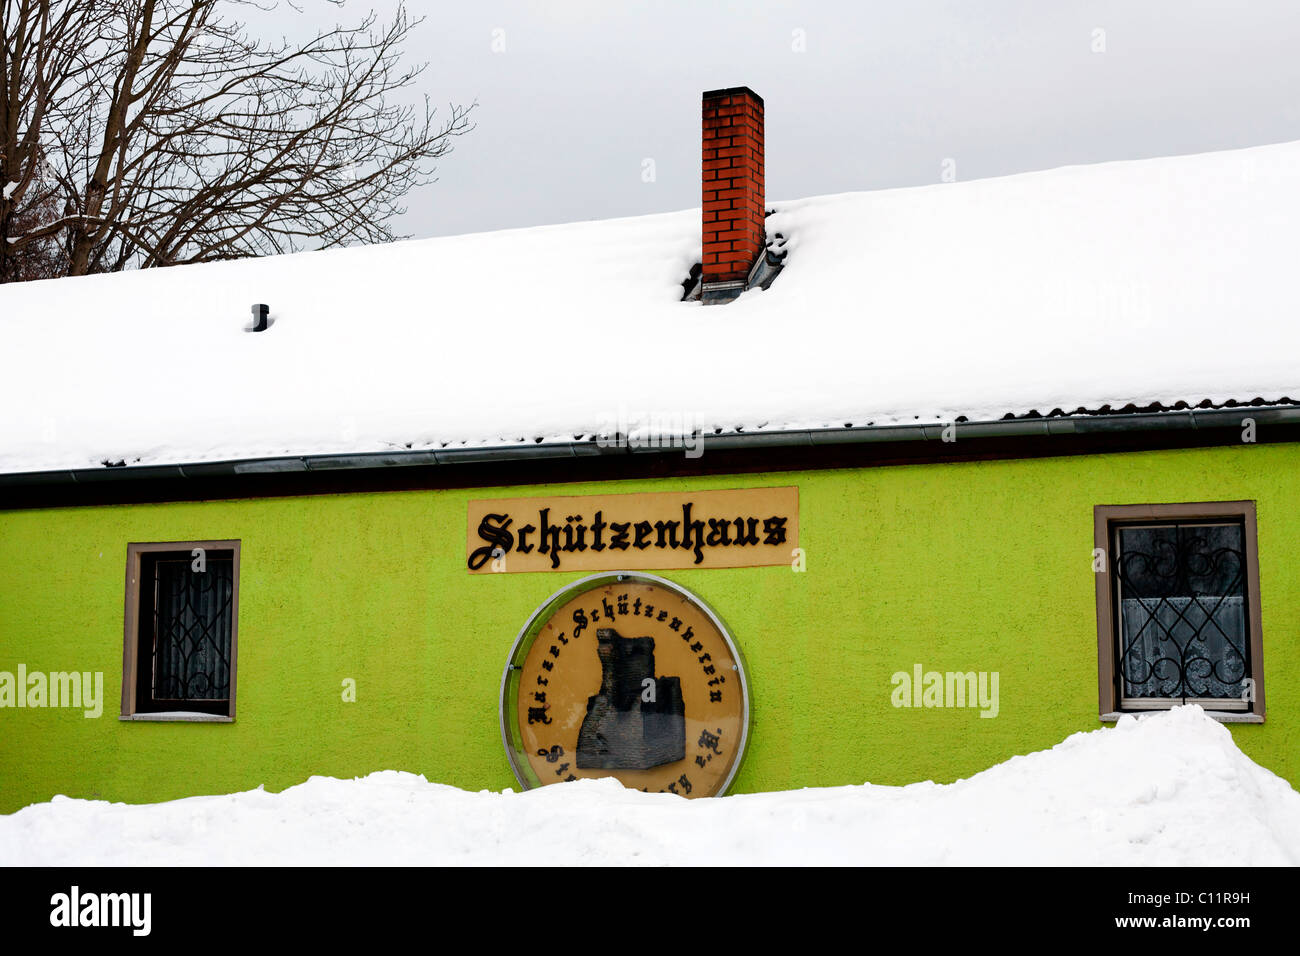 Snow-covered clubhouse, painted in a light green, Stecklenberg, Thale, Northern Harz, Saxony-Anhalt, Germany, Europe - Stock Image